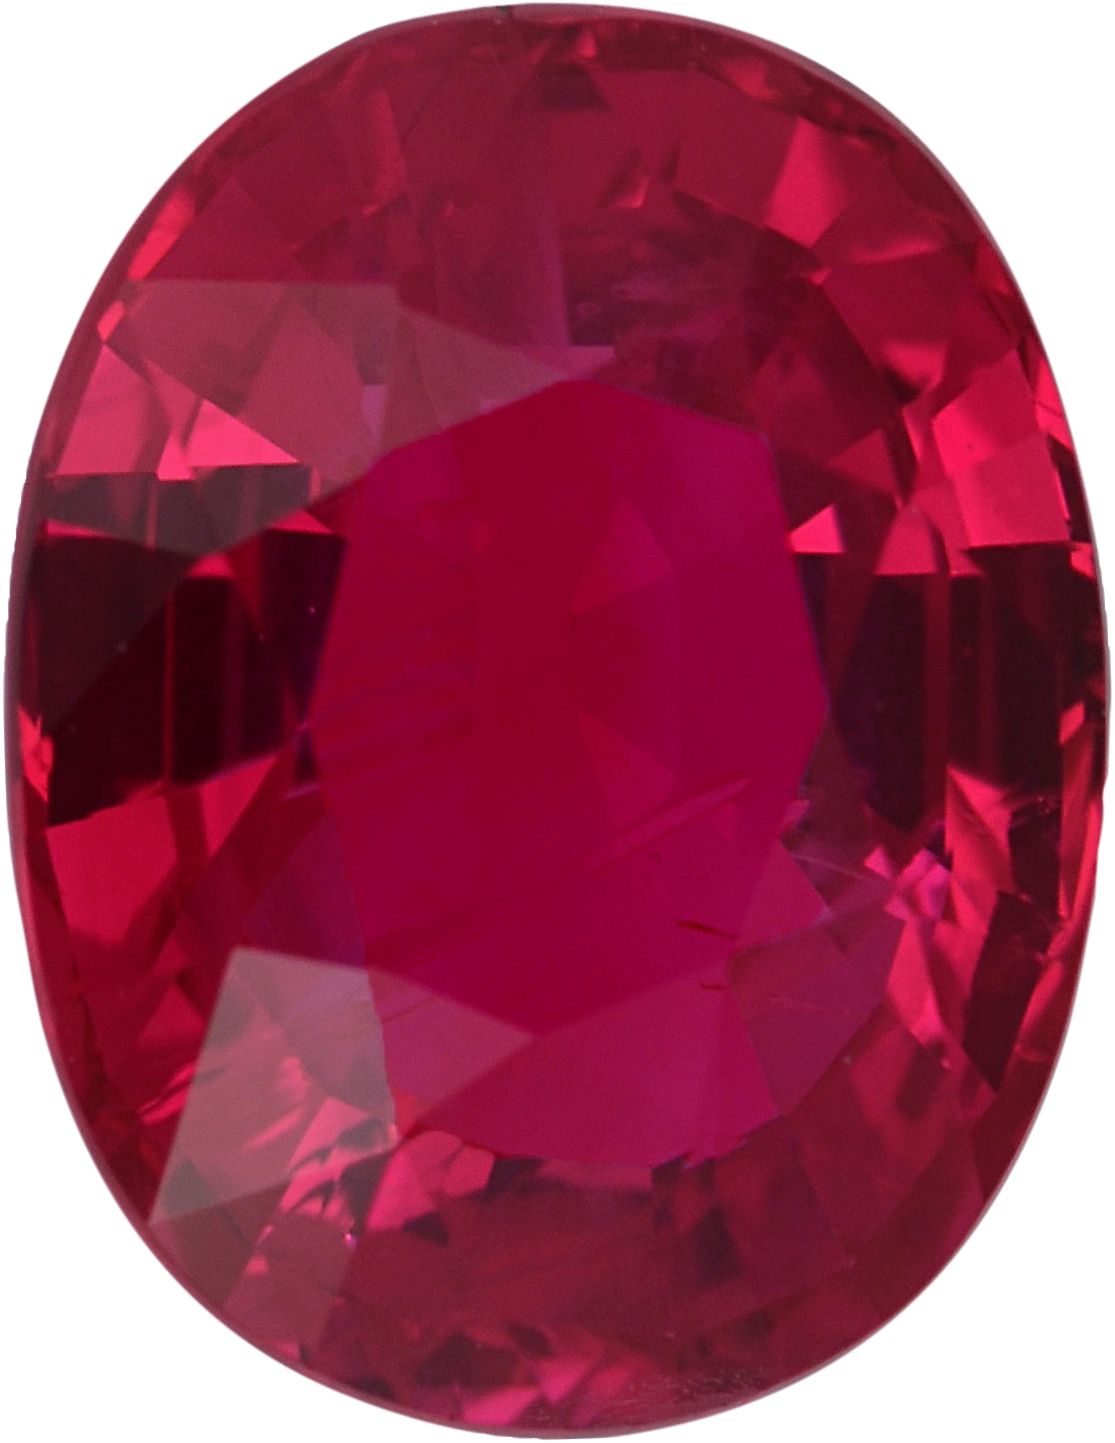 Eye-Catching Oval Cut Loose Ruby Gem, Deep  Red Color, 7.47 x 5.78 mm, 1.53 carats